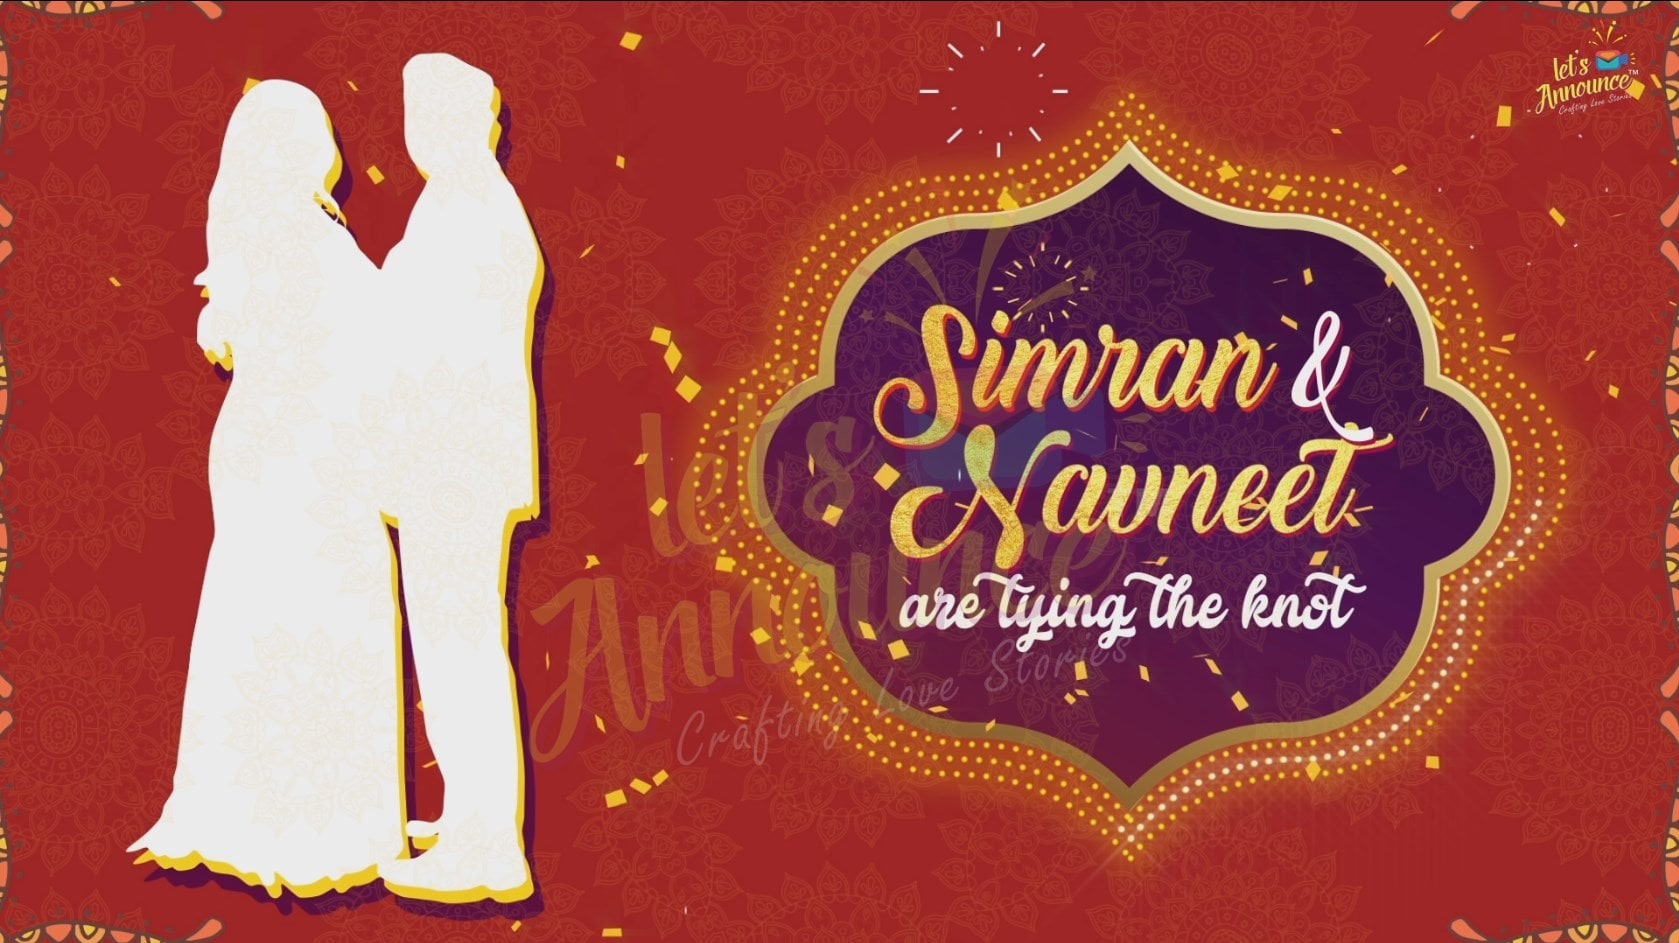 Indian Wedding and Sangeet Invitation-44 sec(USD 85$) - Letsannounce